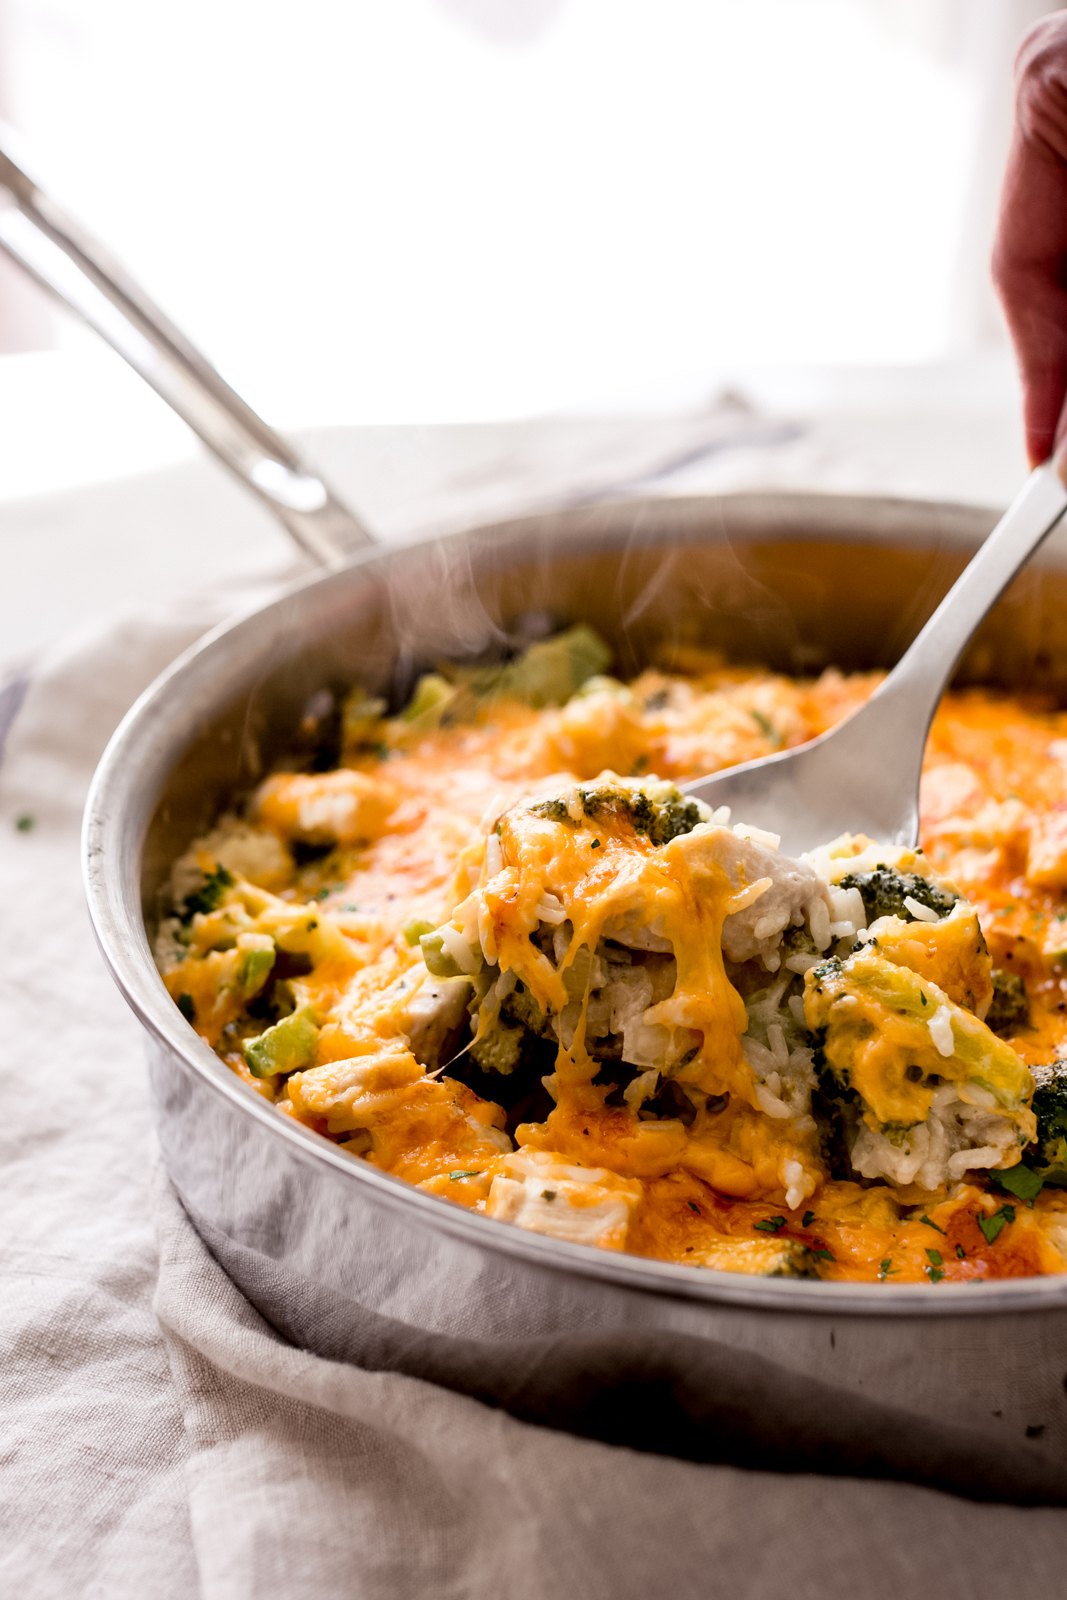 lifting a spoonful of casserole with melted cheese and broccoli showing